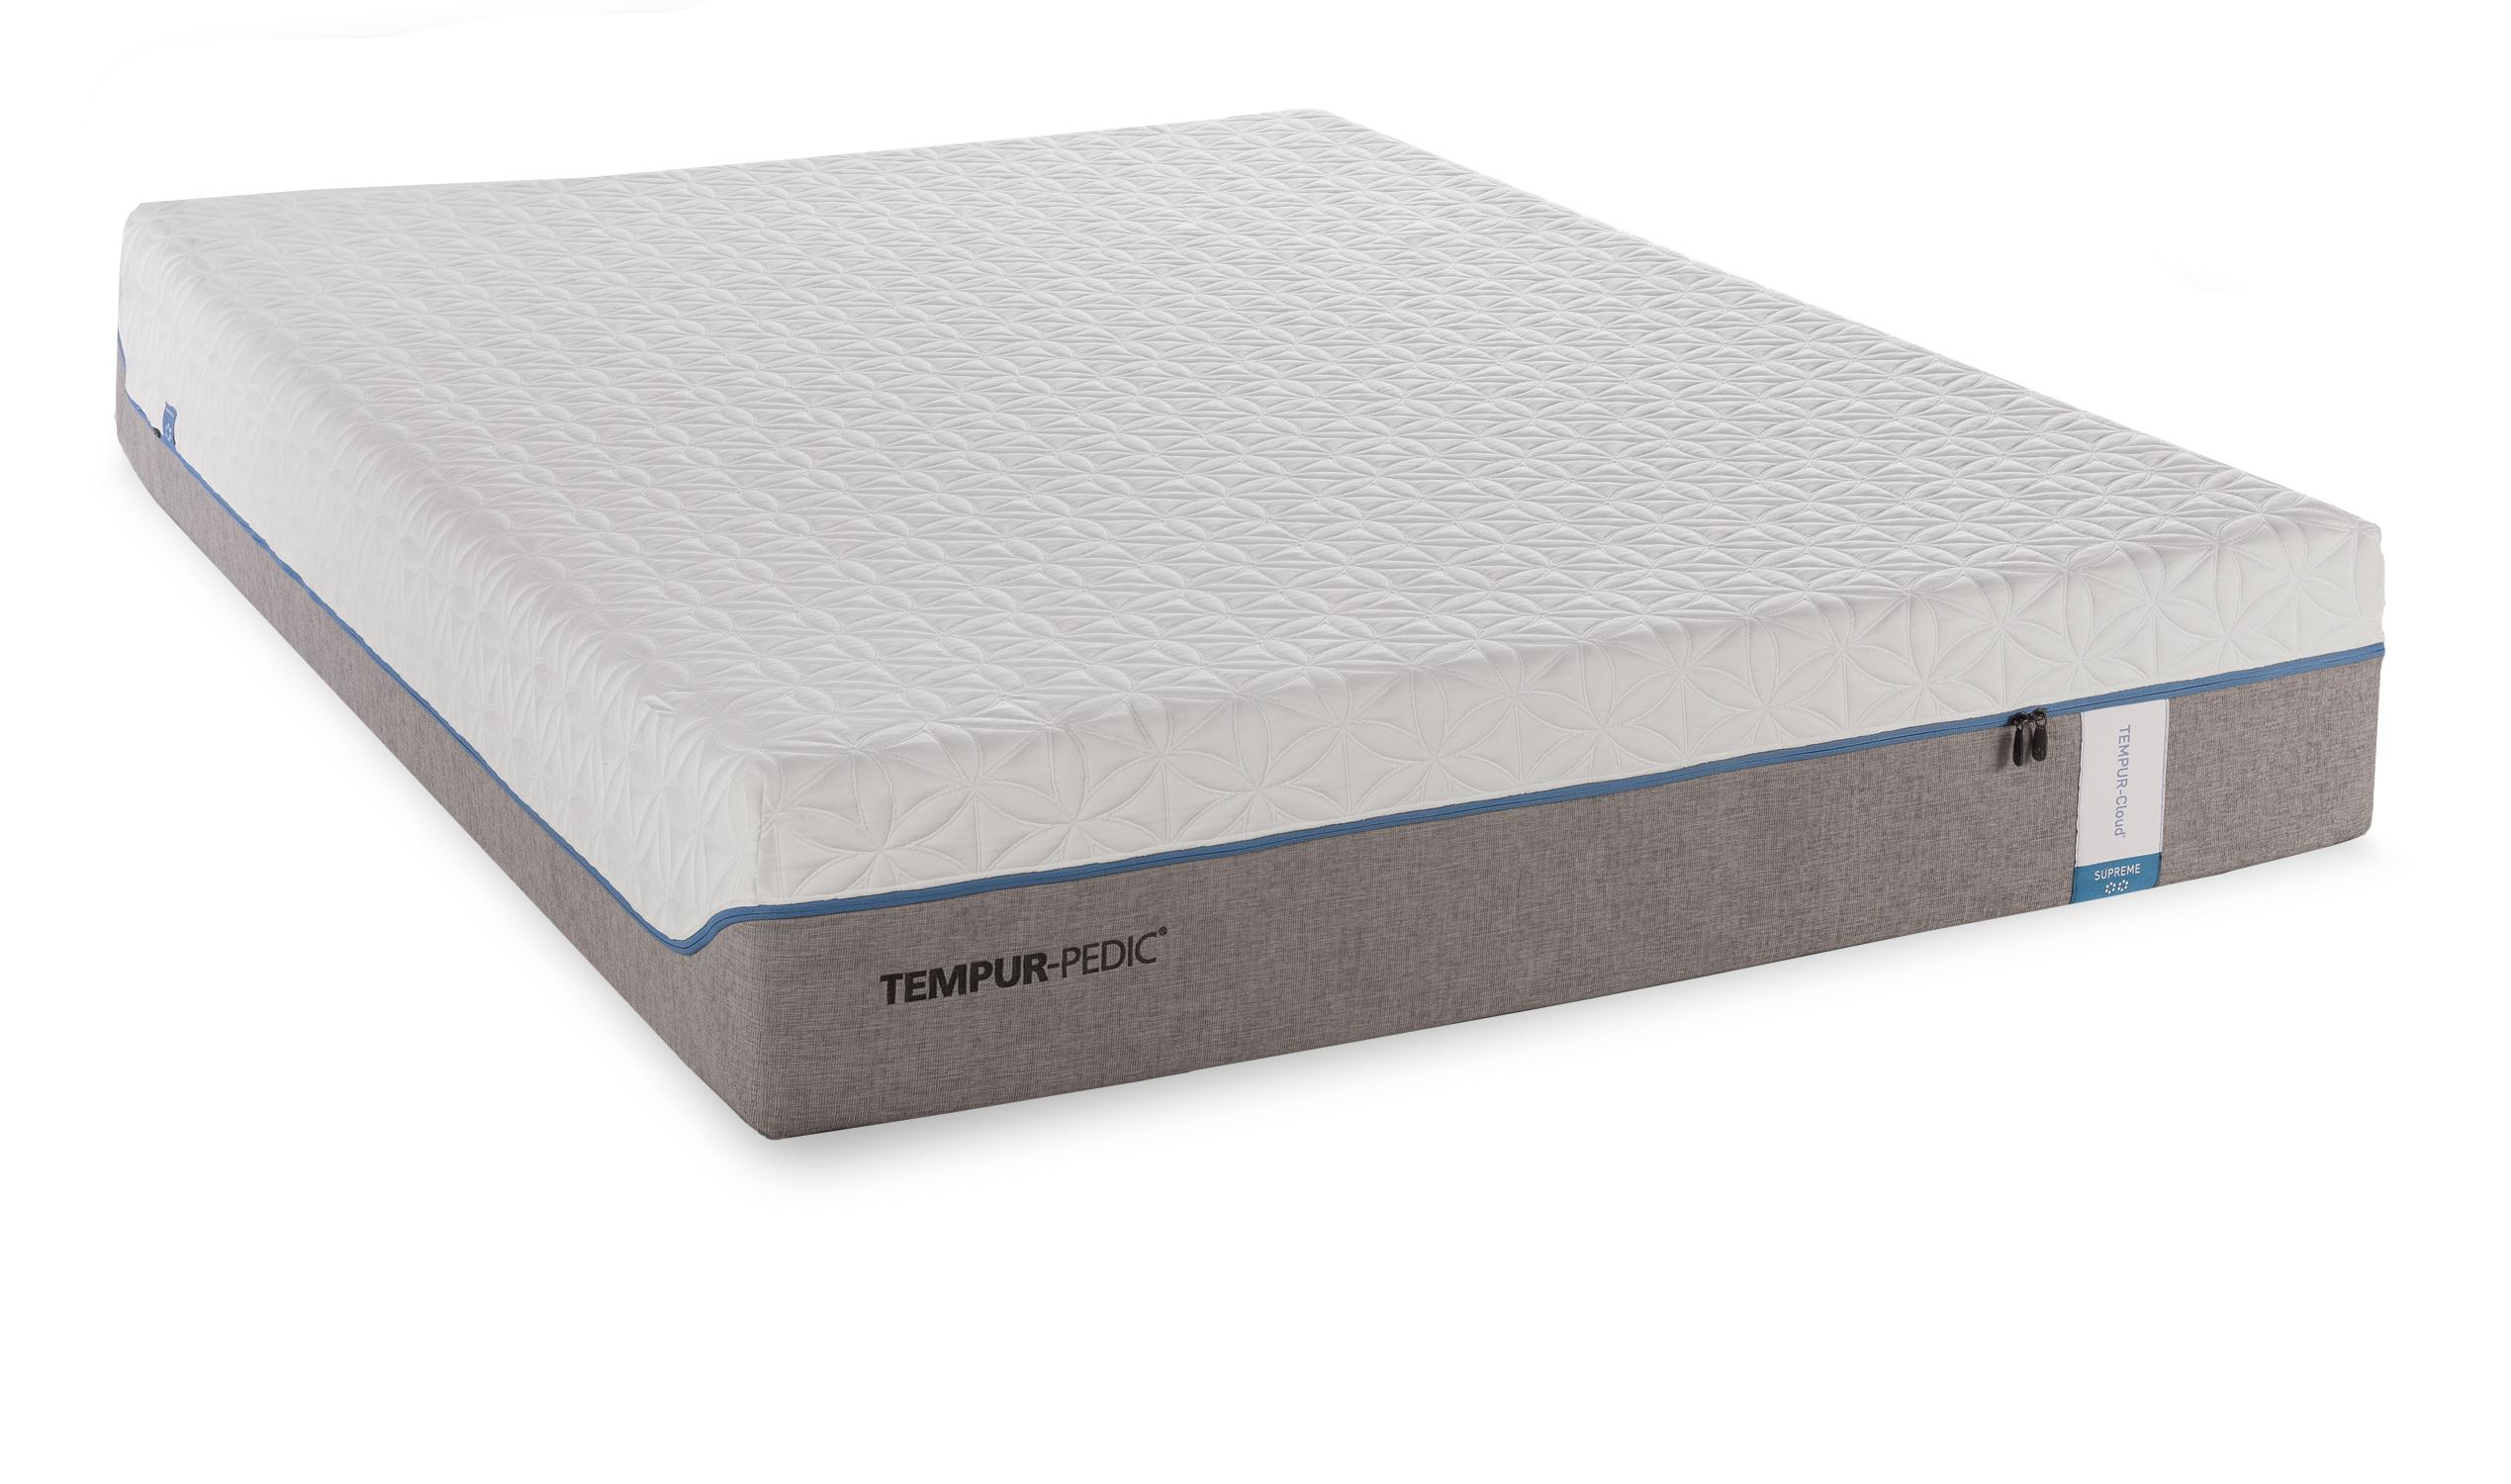 California King Soft Mattress And Tempur Ergo Premier Adjustable Foundation By Tempur Pedic